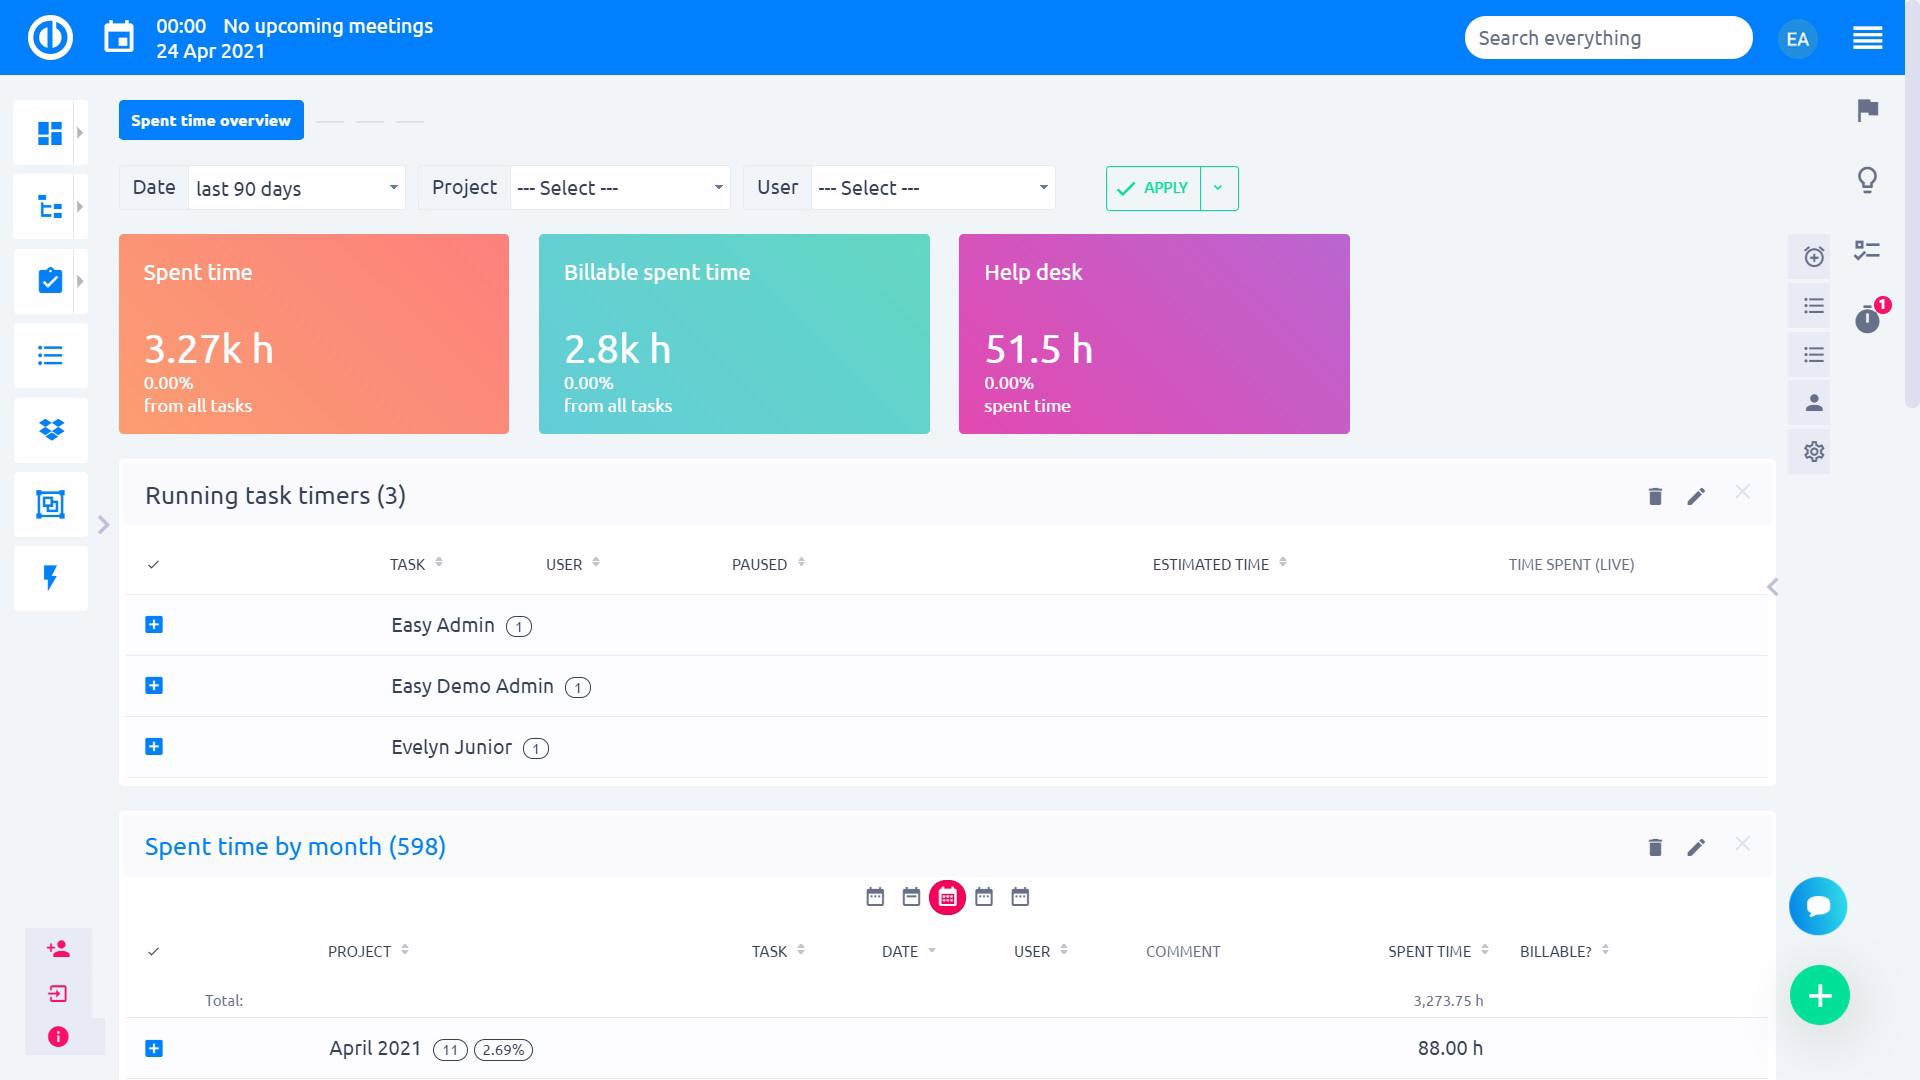 Easy Redmine 2019 - Time Report Dashboard